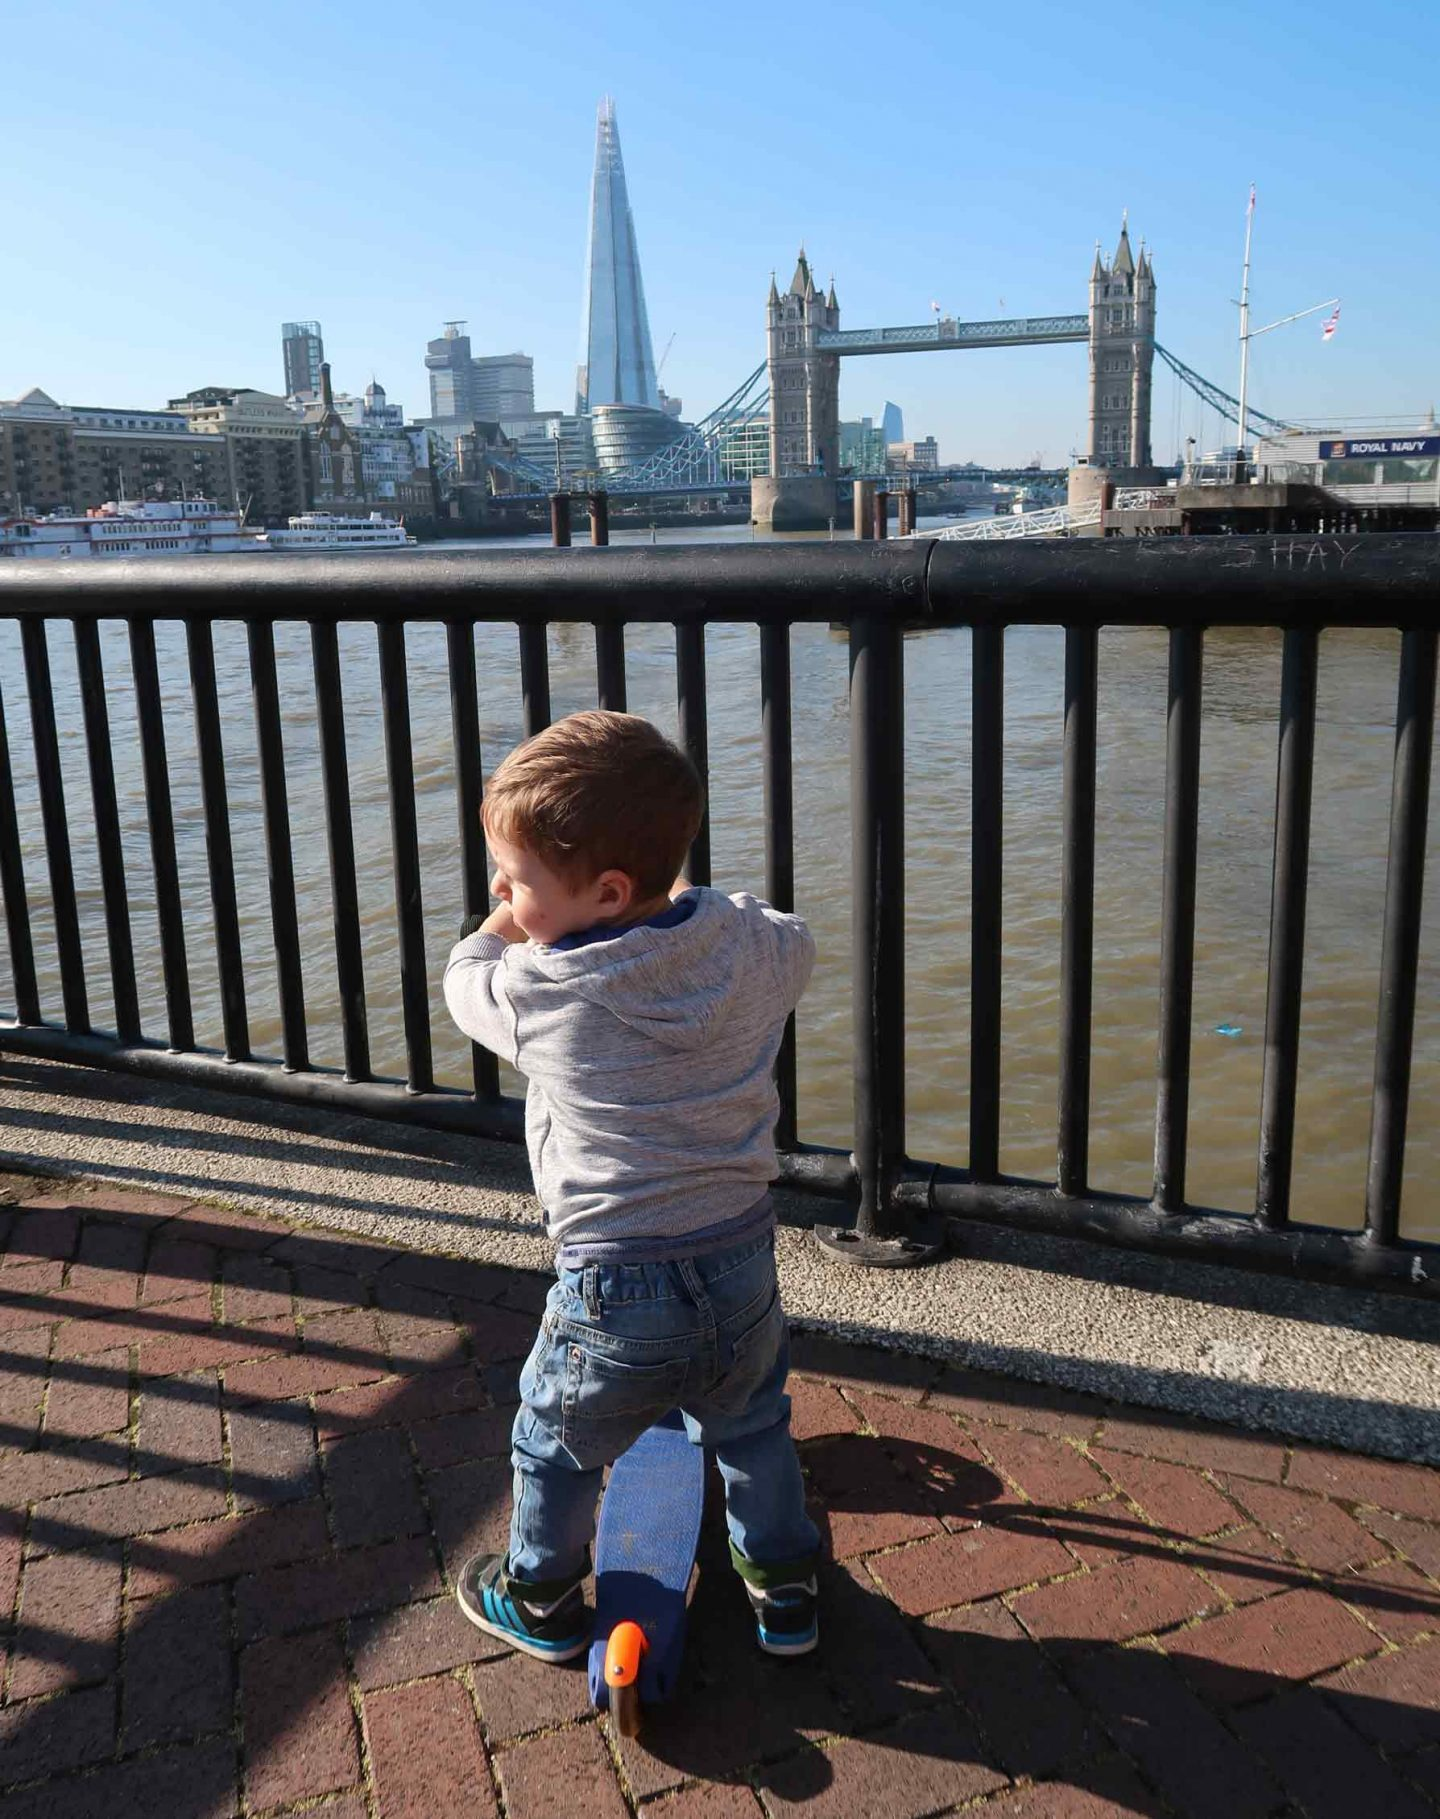 What to do near the Tower Bridge